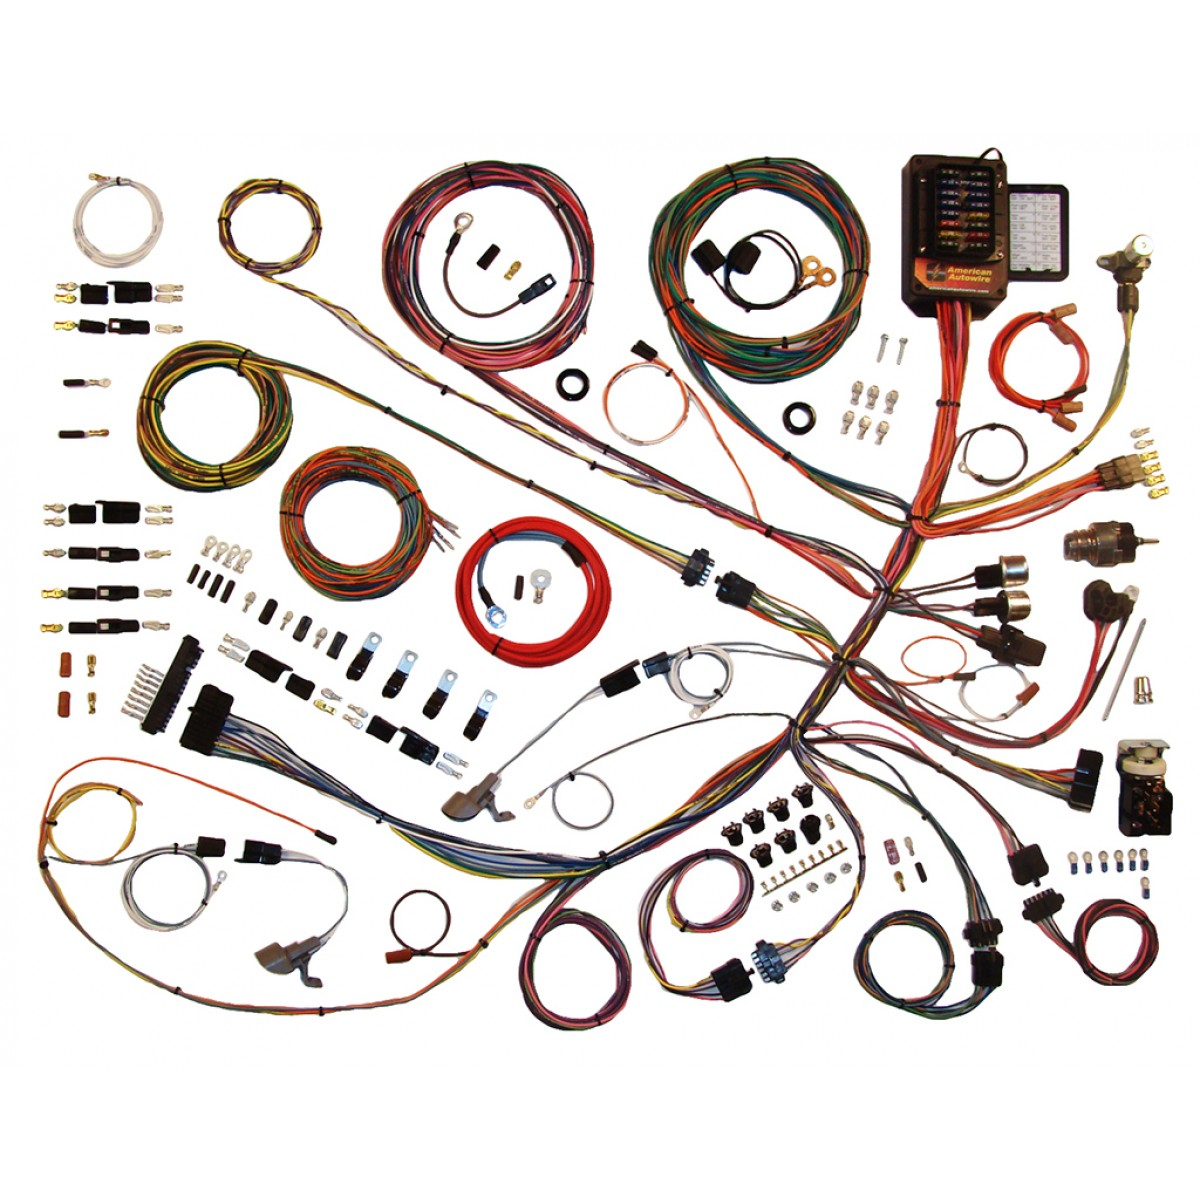 66 Ford F100 Wiring Harness Diagram Online 1962 Cadillac Headlight Switch 1961 1966 Wire Kit Truck Part Excursion